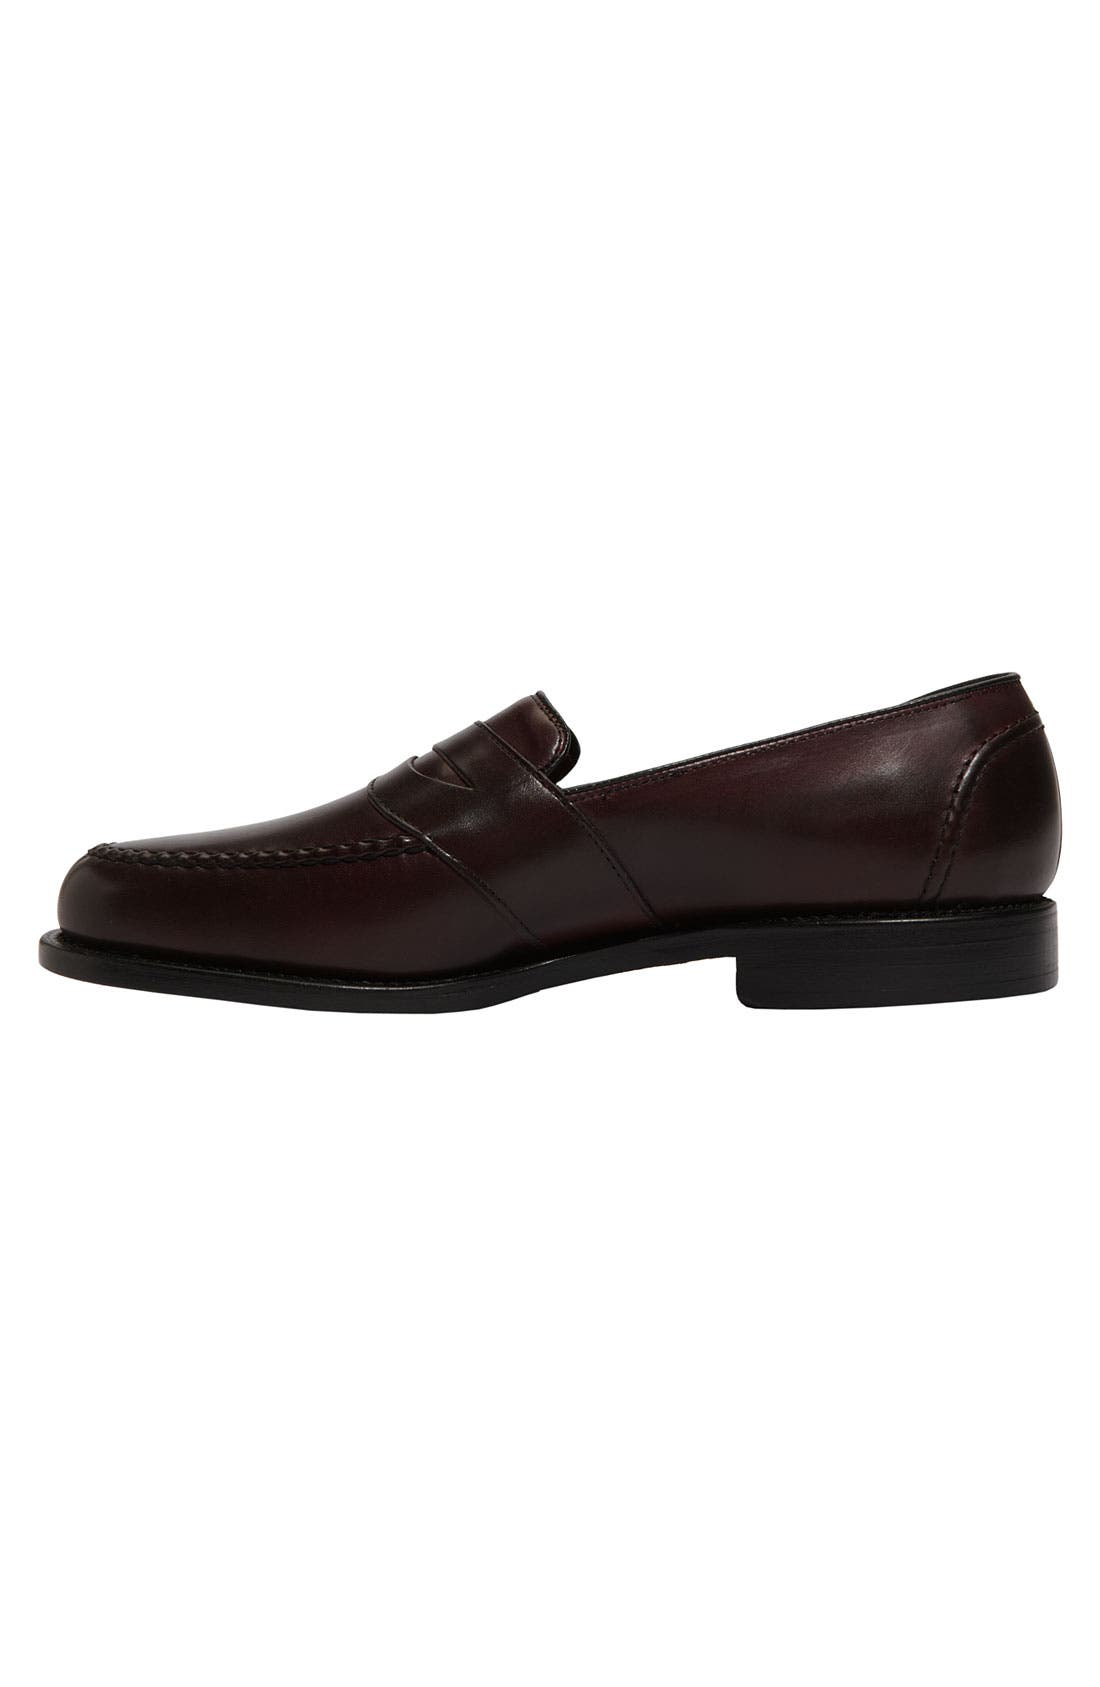 Alternate Image 2  - Allen Edmonds 'Randolph' Loafer (Men)